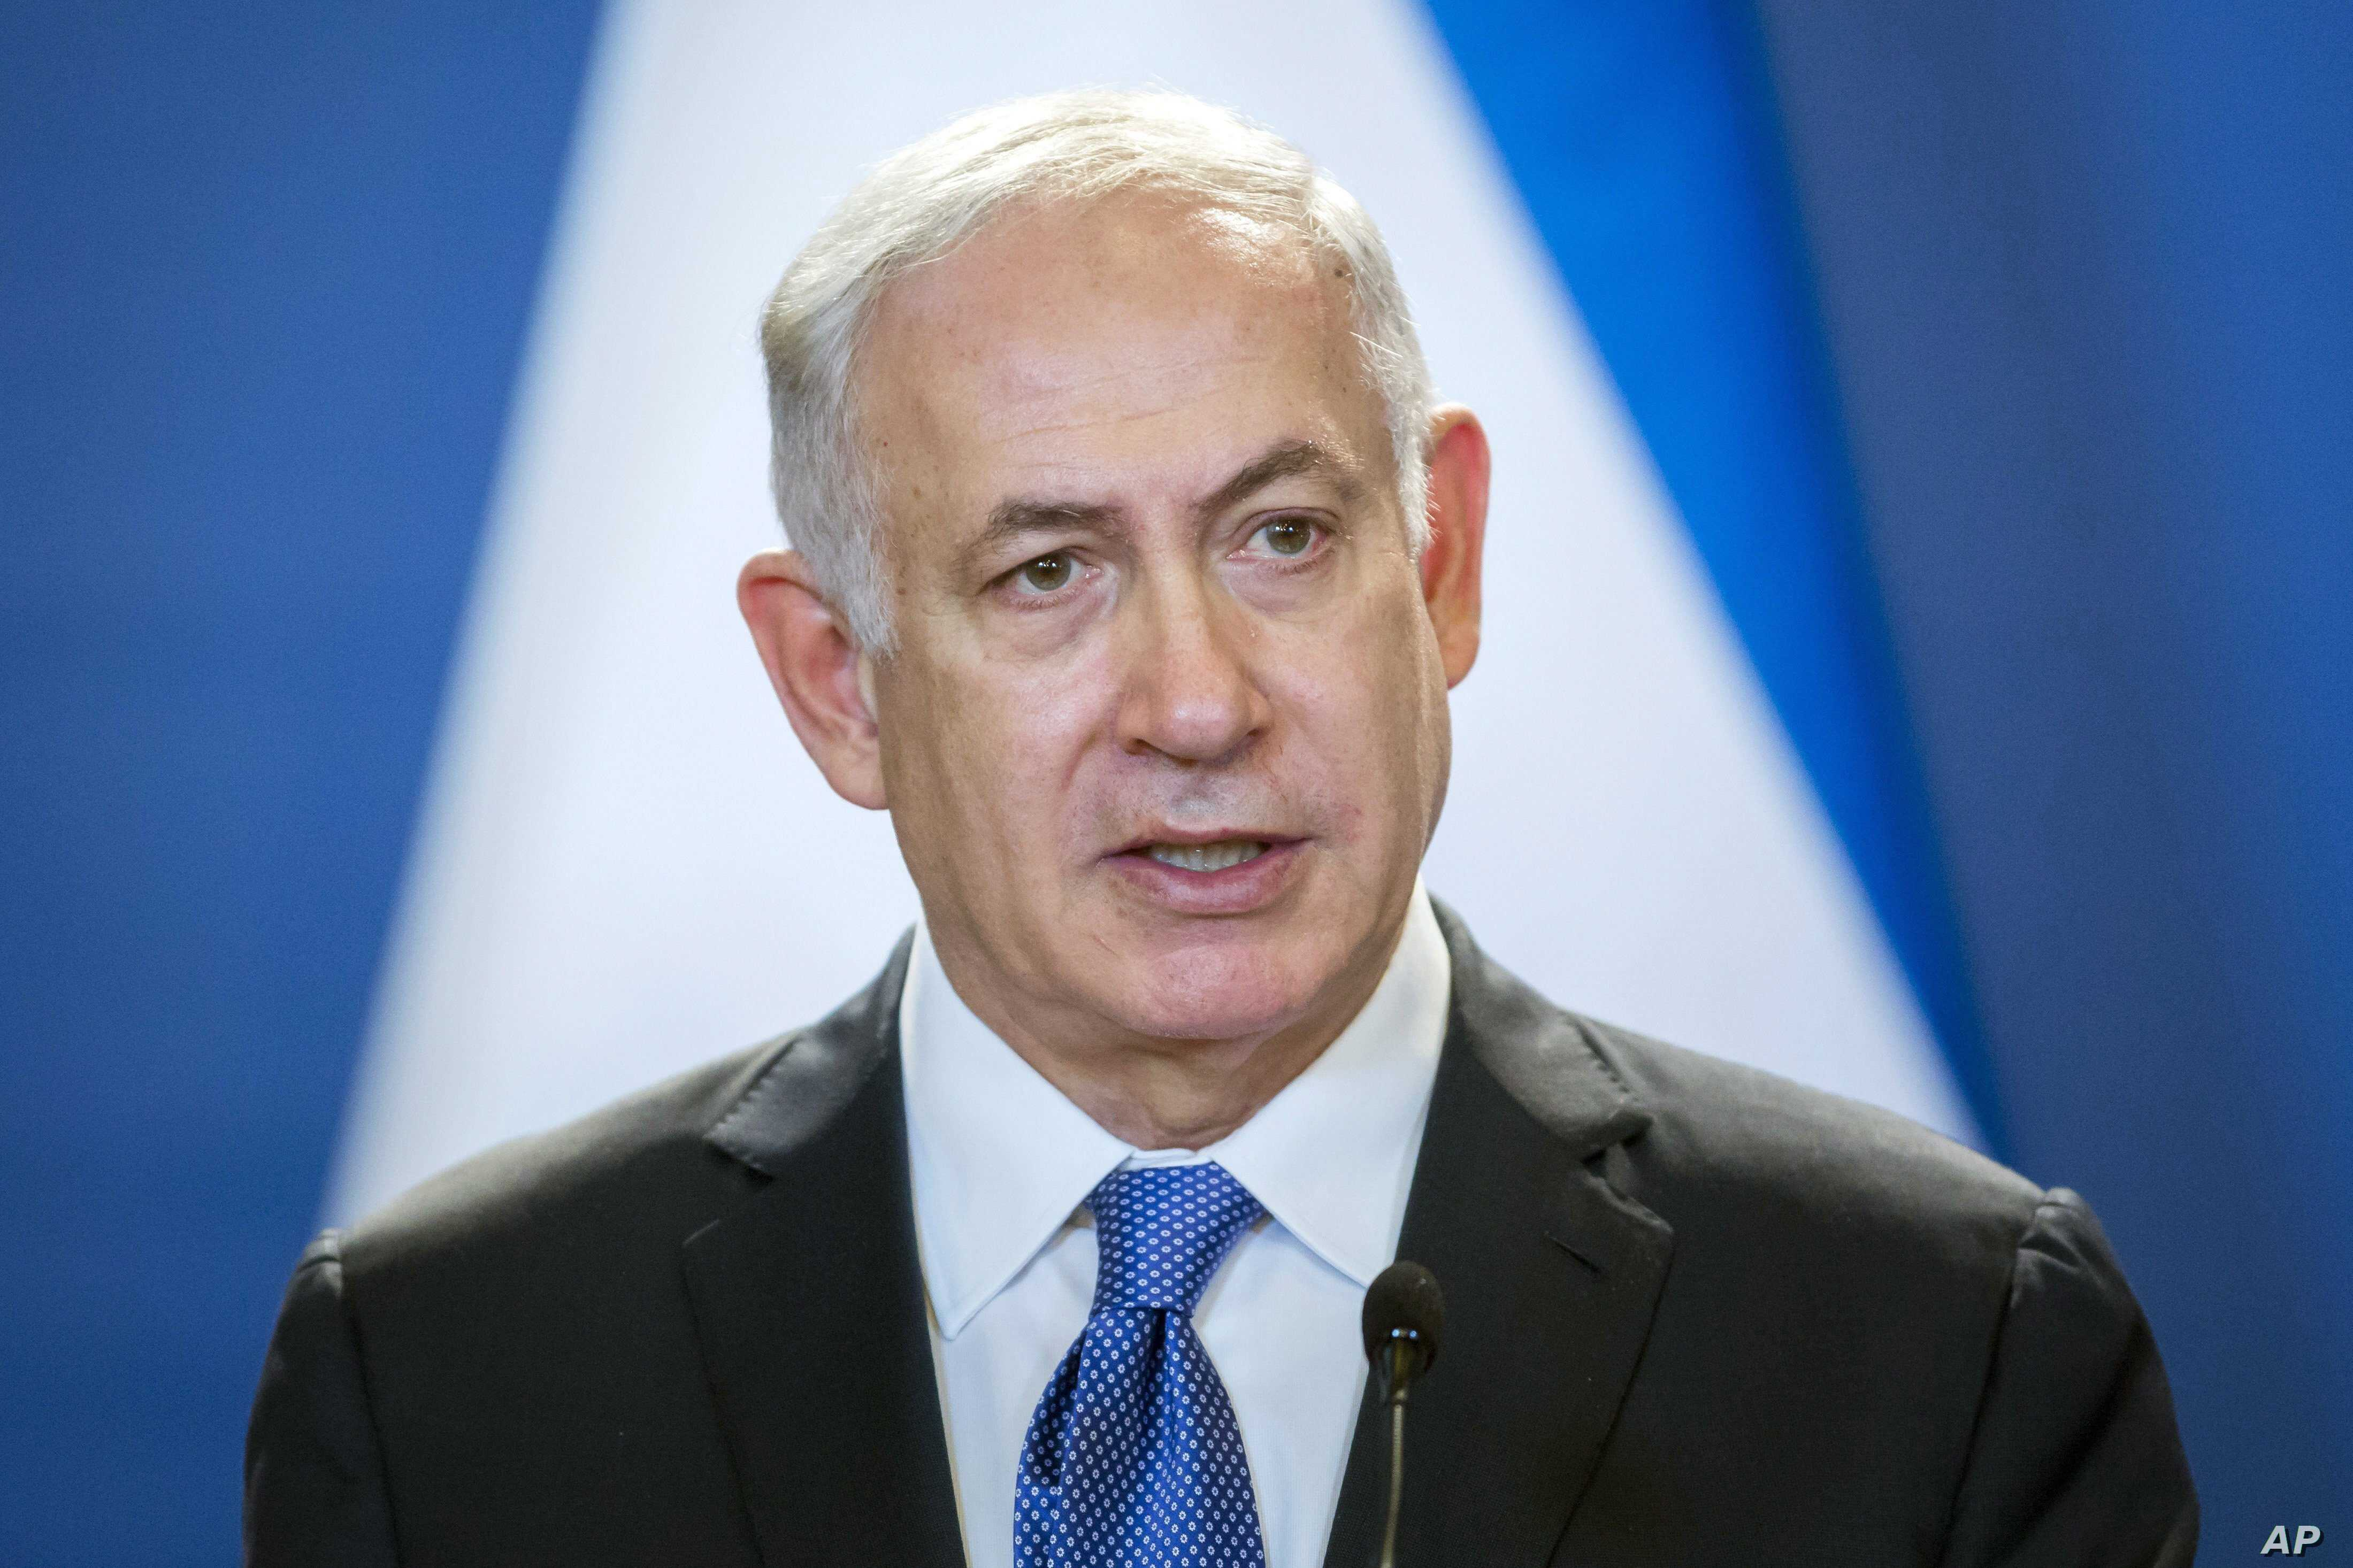 Israeli Prime Minister Benjamin Netanyahu speaks during his joint press conference with his Hungarian counterpart Viktor Orban in the Parliament building in Budapest, Hungary, July 18, 2017.